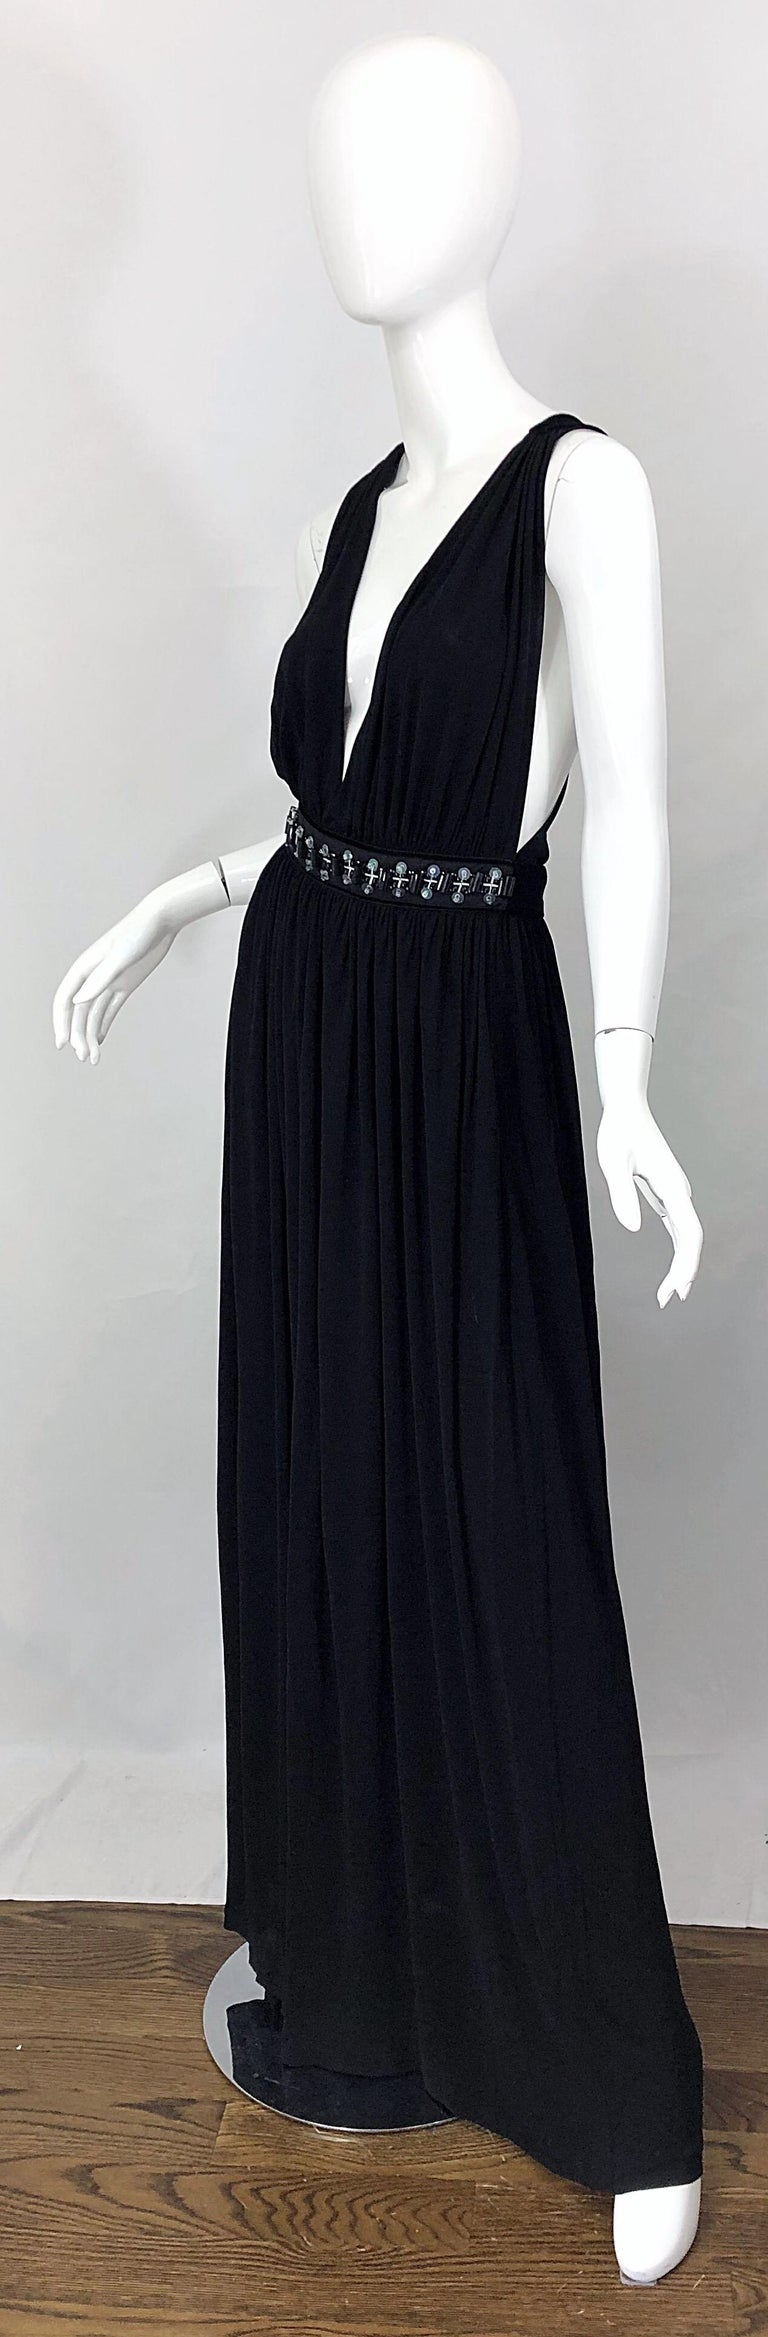 1990s Dolce & Gabbana D&G Black Plunging Sexy Beaded Sleeveless Vintage 90s Gown For Sale 1